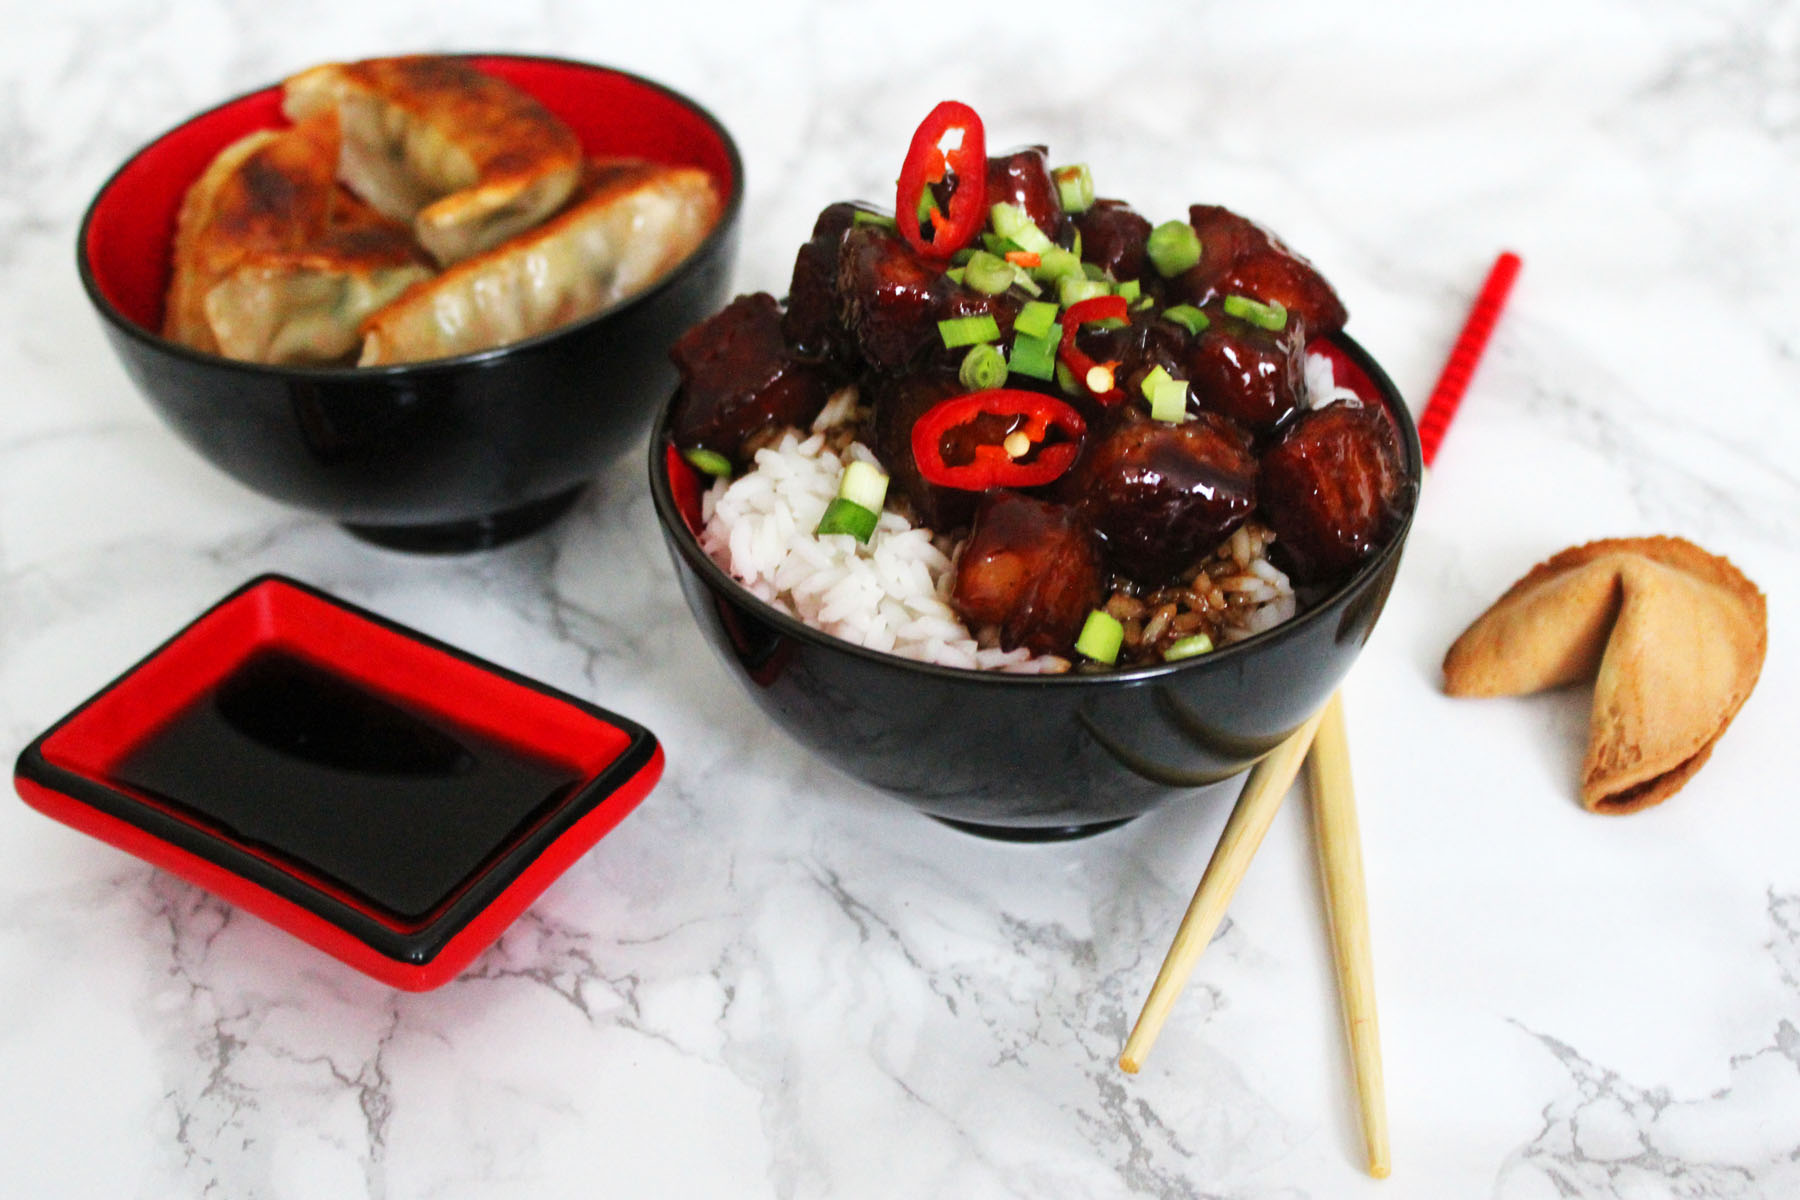 Sweet And Spicy Pork Belly Hong Shao Rou Supper In The